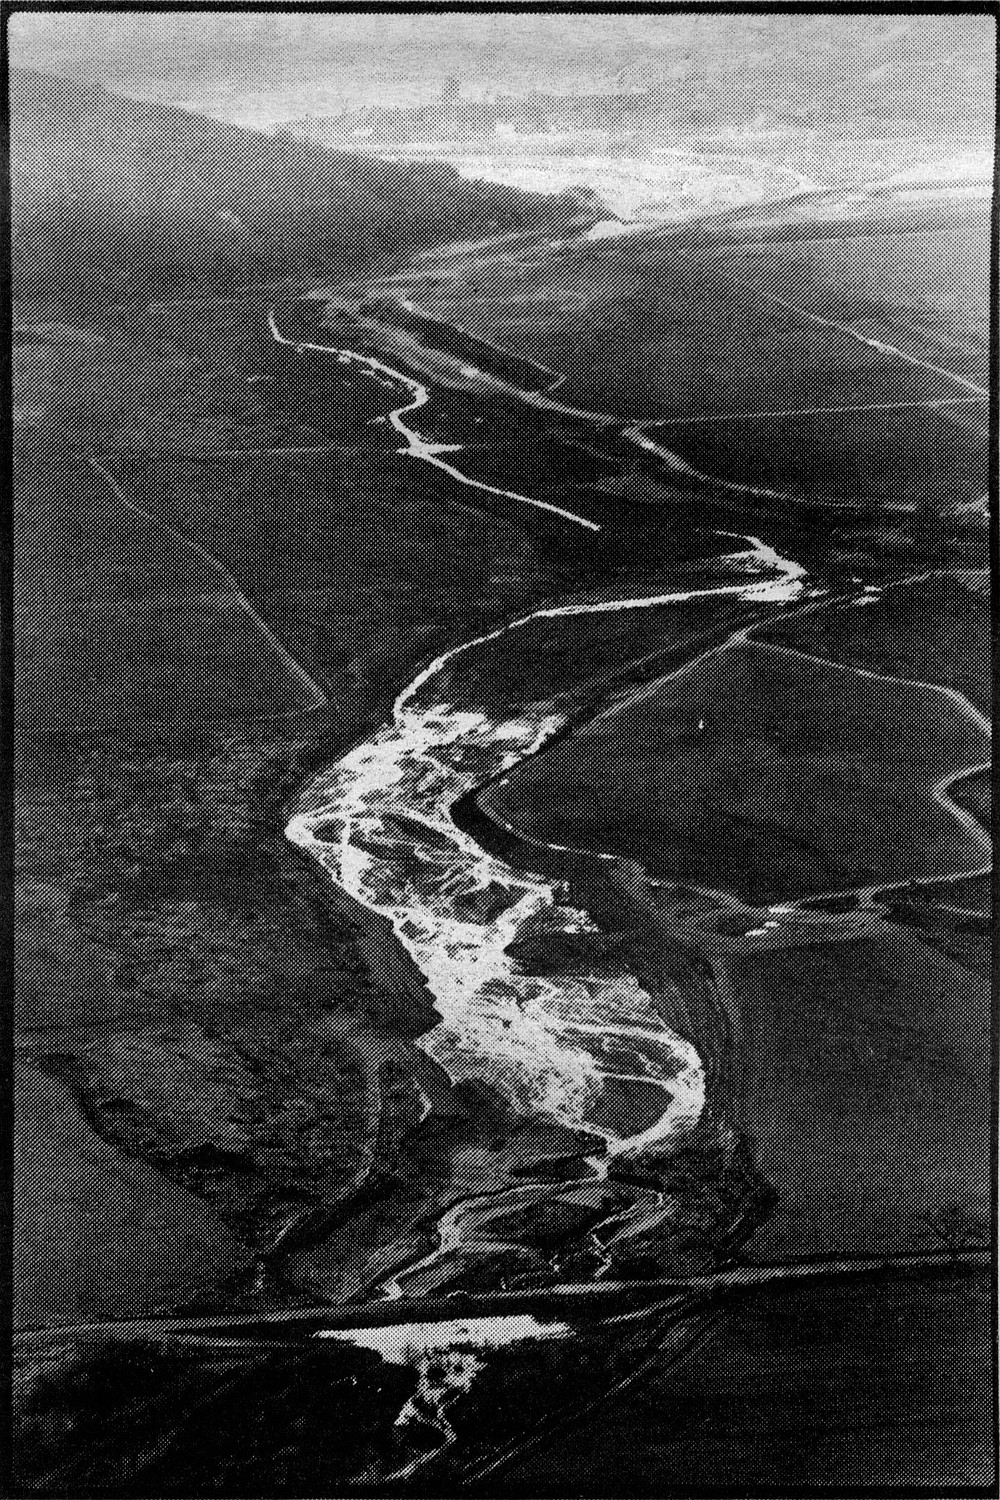 "The San Pasqual Valley.  In those days the river's course was serpentine, which the dairyman H.G. Fenton thought deprived him of usable farm land. So Fenton ""corrected"" the problem by using bulldozers to straighten three miles of the river."